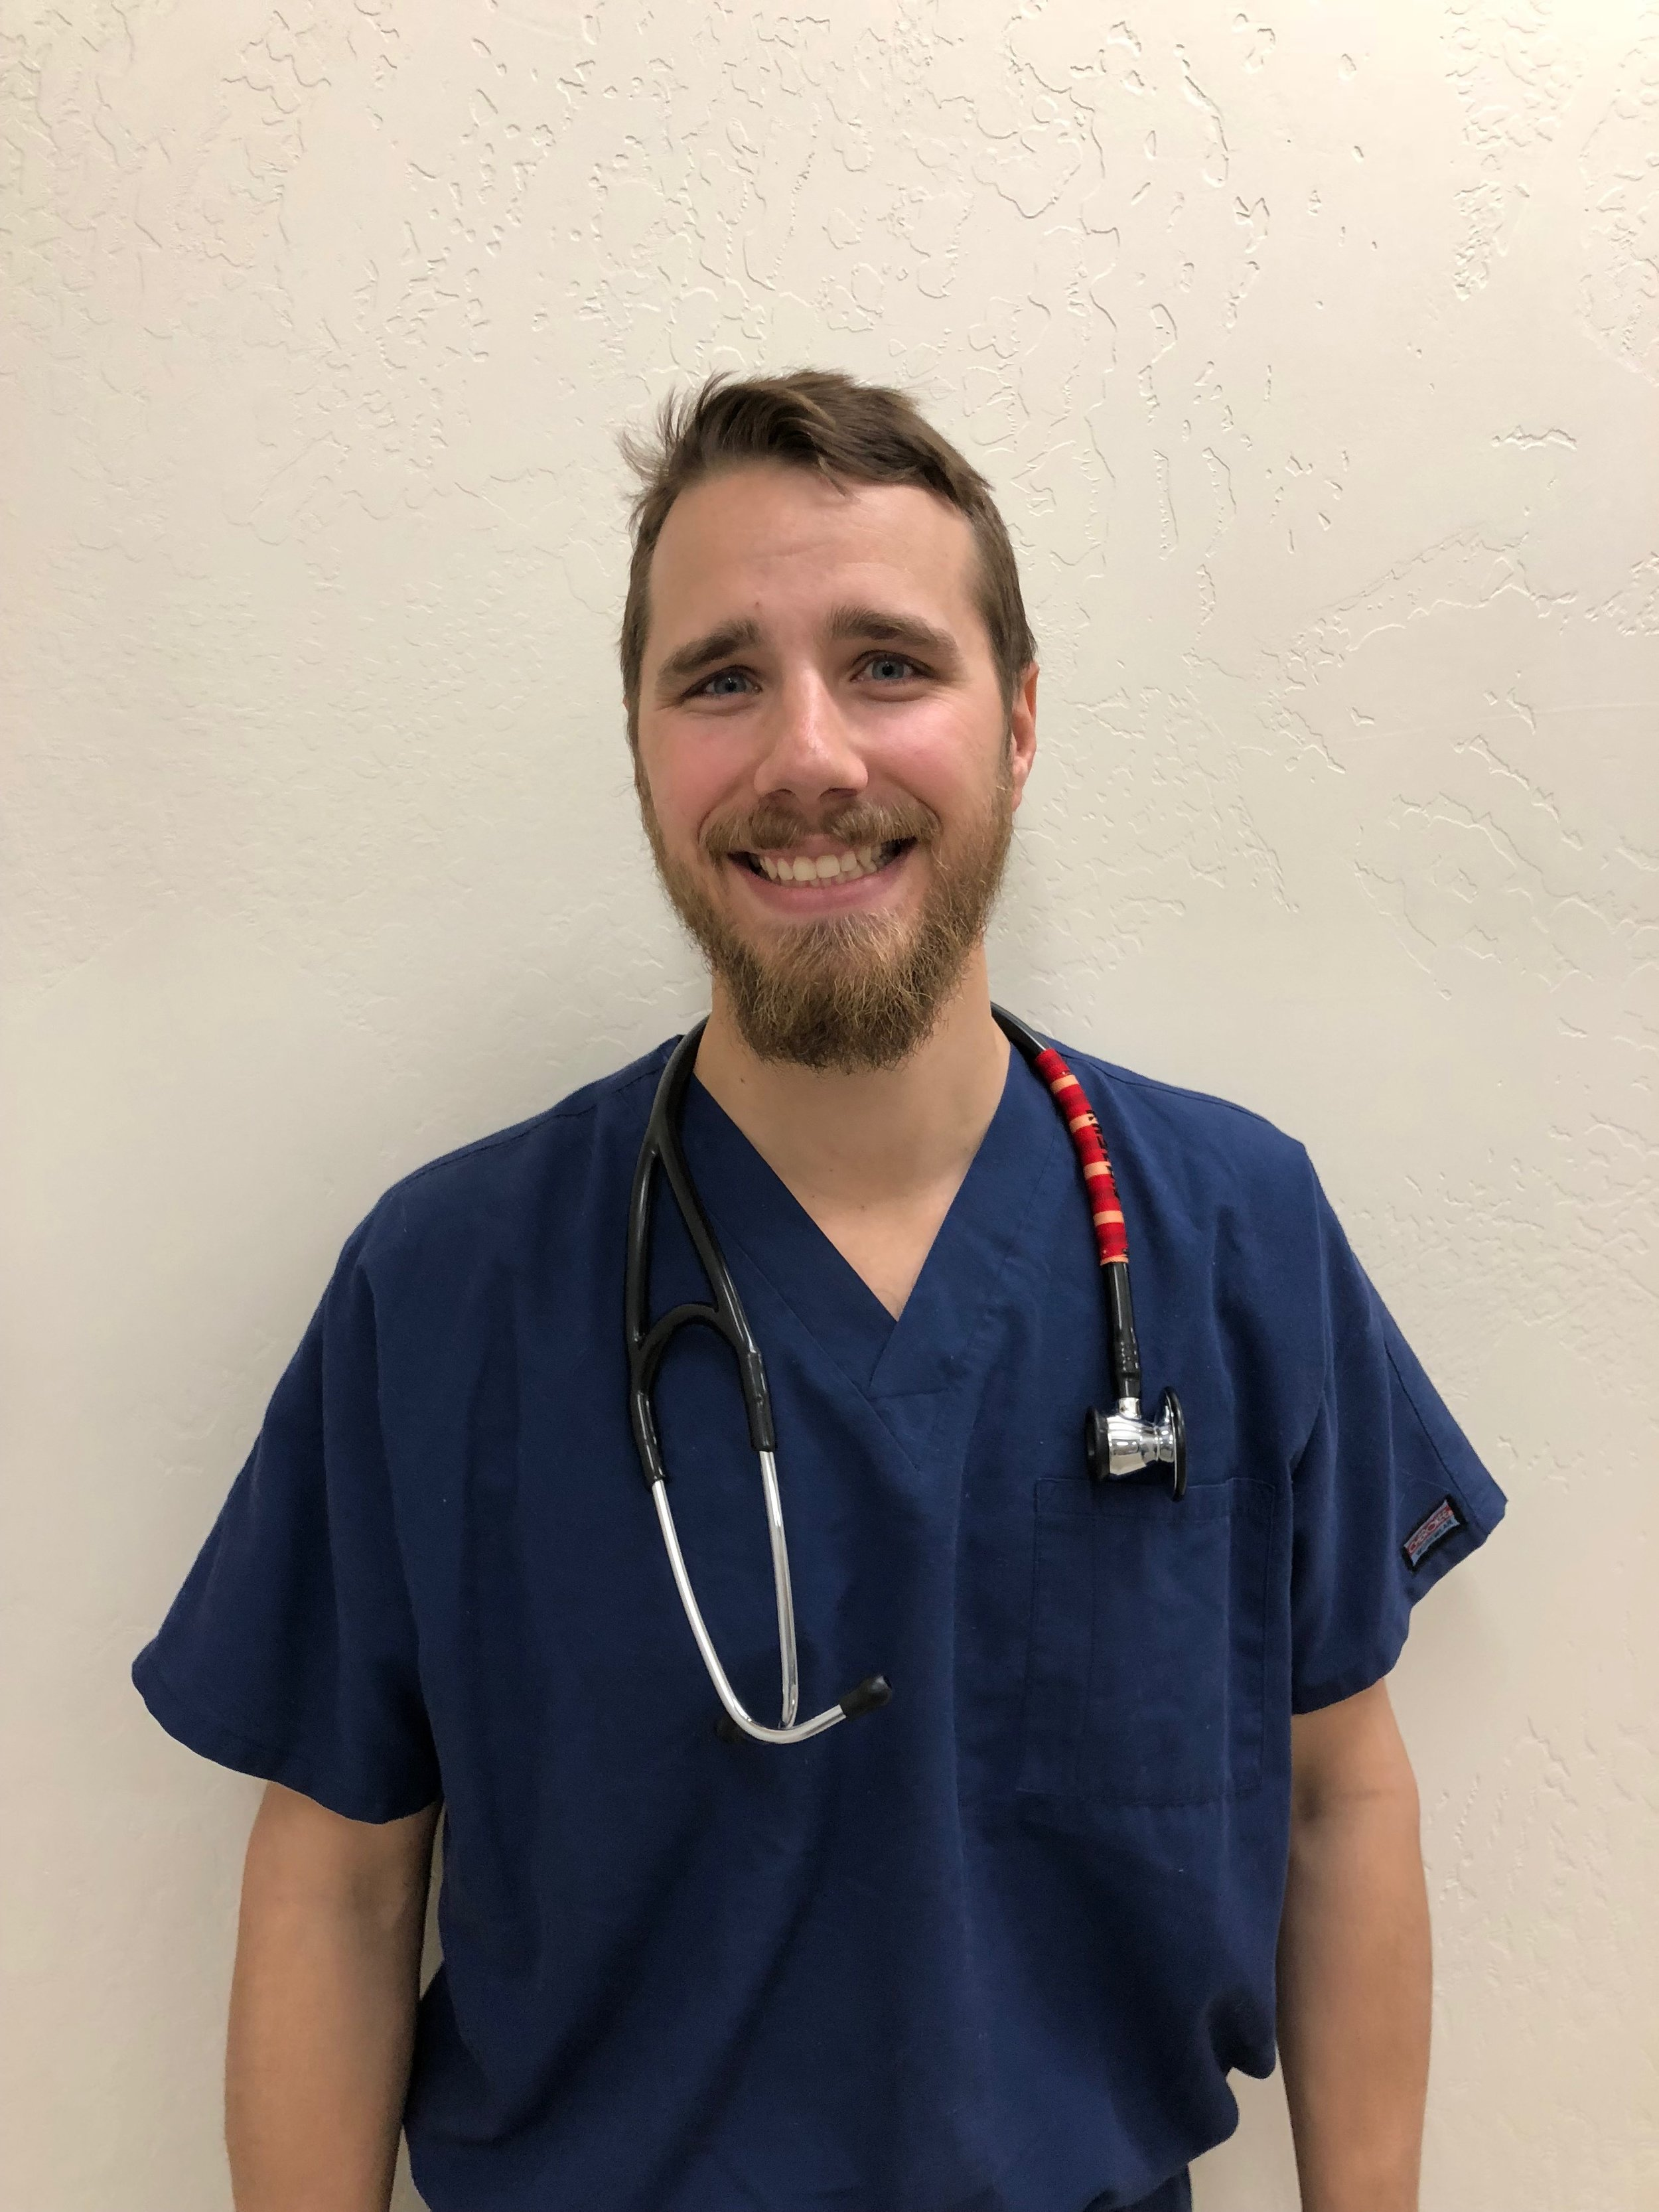 Kaylun Grandy PA-C - Kaylun is originally from Wyoming and enjoys backpacking, shooting, hunting, and fishing. He first came to Elko after graduating from Utah State University and joined Barrick as an industrial hygienist in 2012. He then enrolled and graduated from the Physician Assistant program at Touro University Nevada in 2017. Kaylun has committed to serving rural and underserved populations such as when he worked with the Mobile Health Clinic for the Las Vegas homeless and served a medical mission in Guatemala. Kaylun is excited to be back in the community serving the families of Elko and Spring Creek.